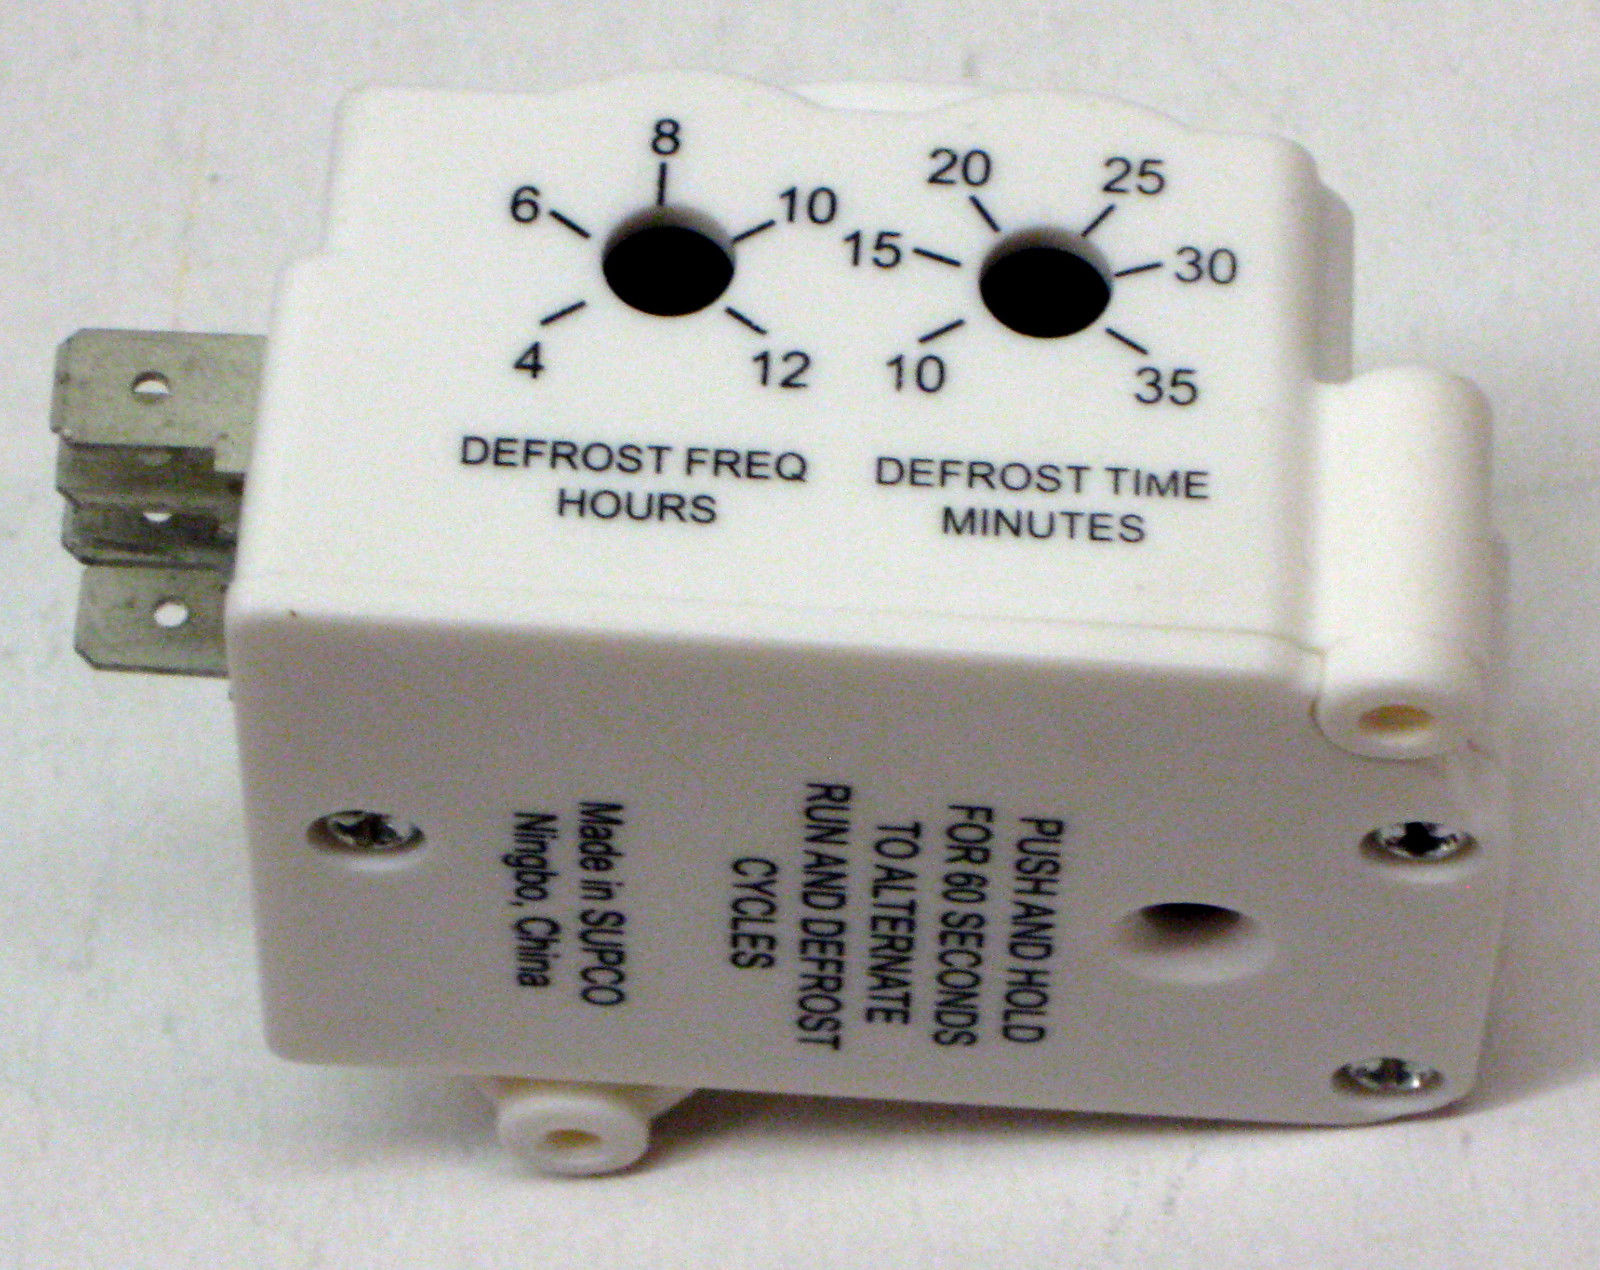 Electronic Voltage Tester For A Refrigerator : Uet supco refrigerator defrost timer control universal